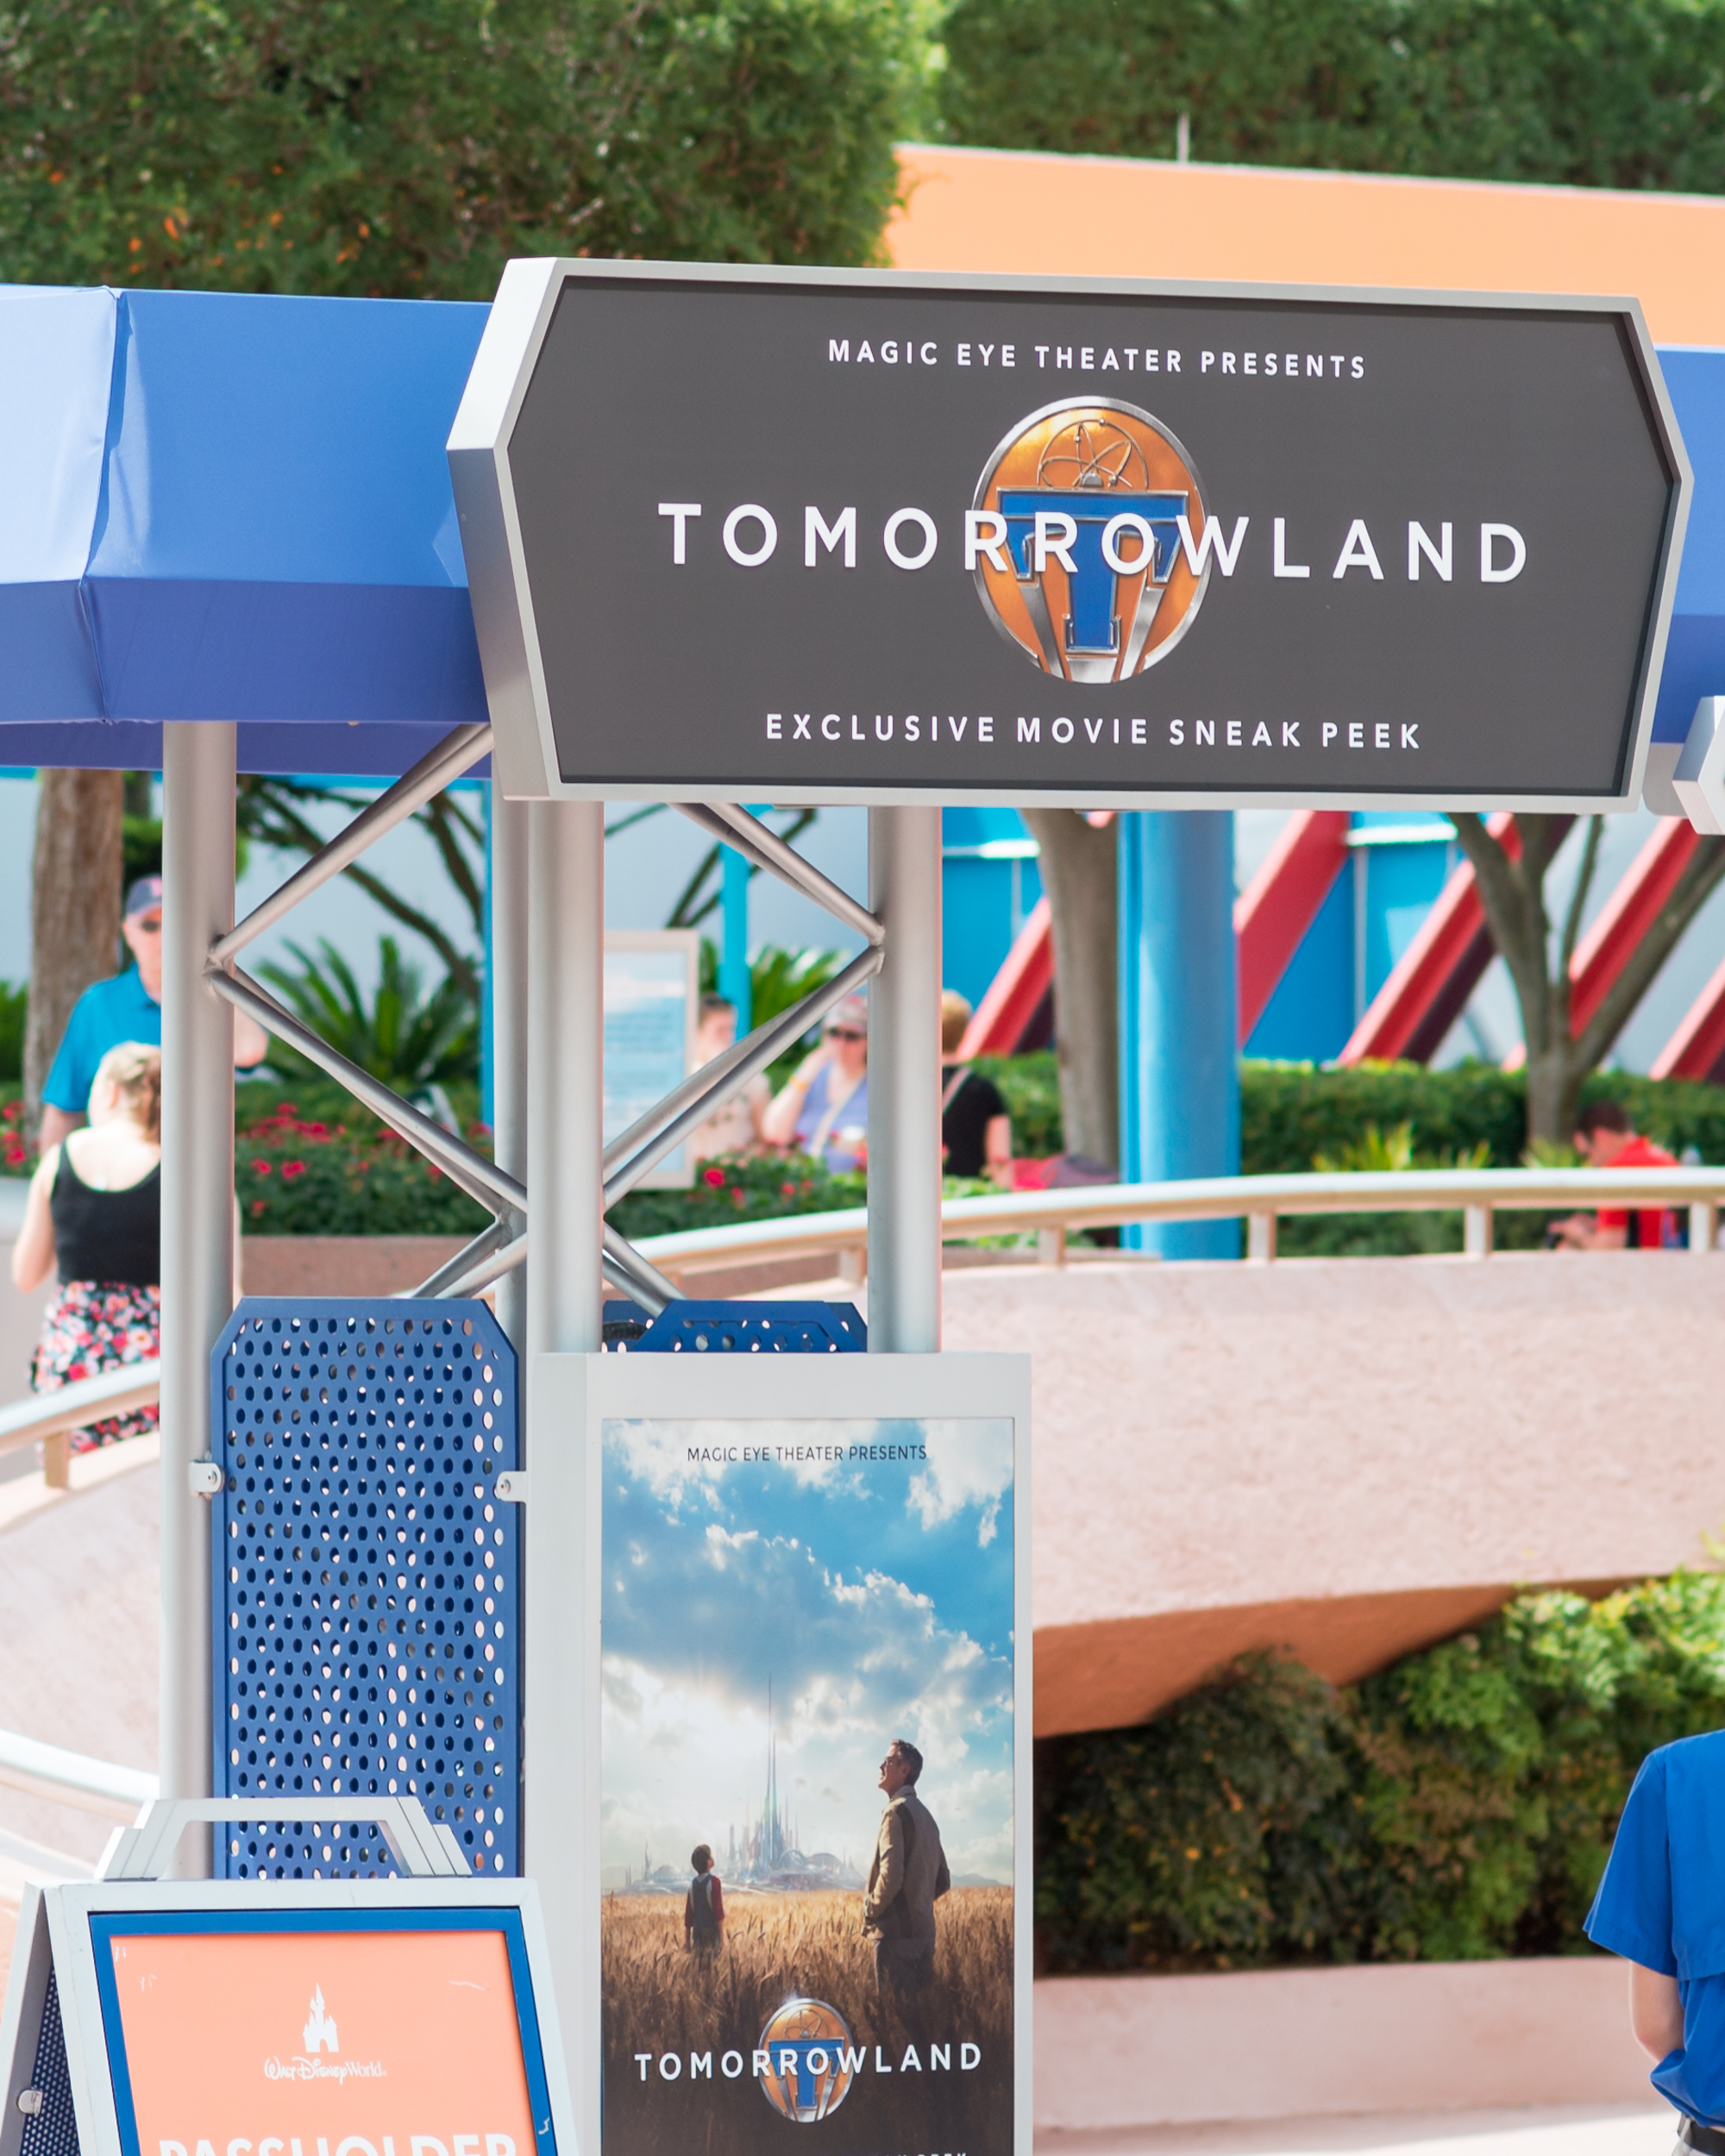 Tomorrowland movie preview at Epcot